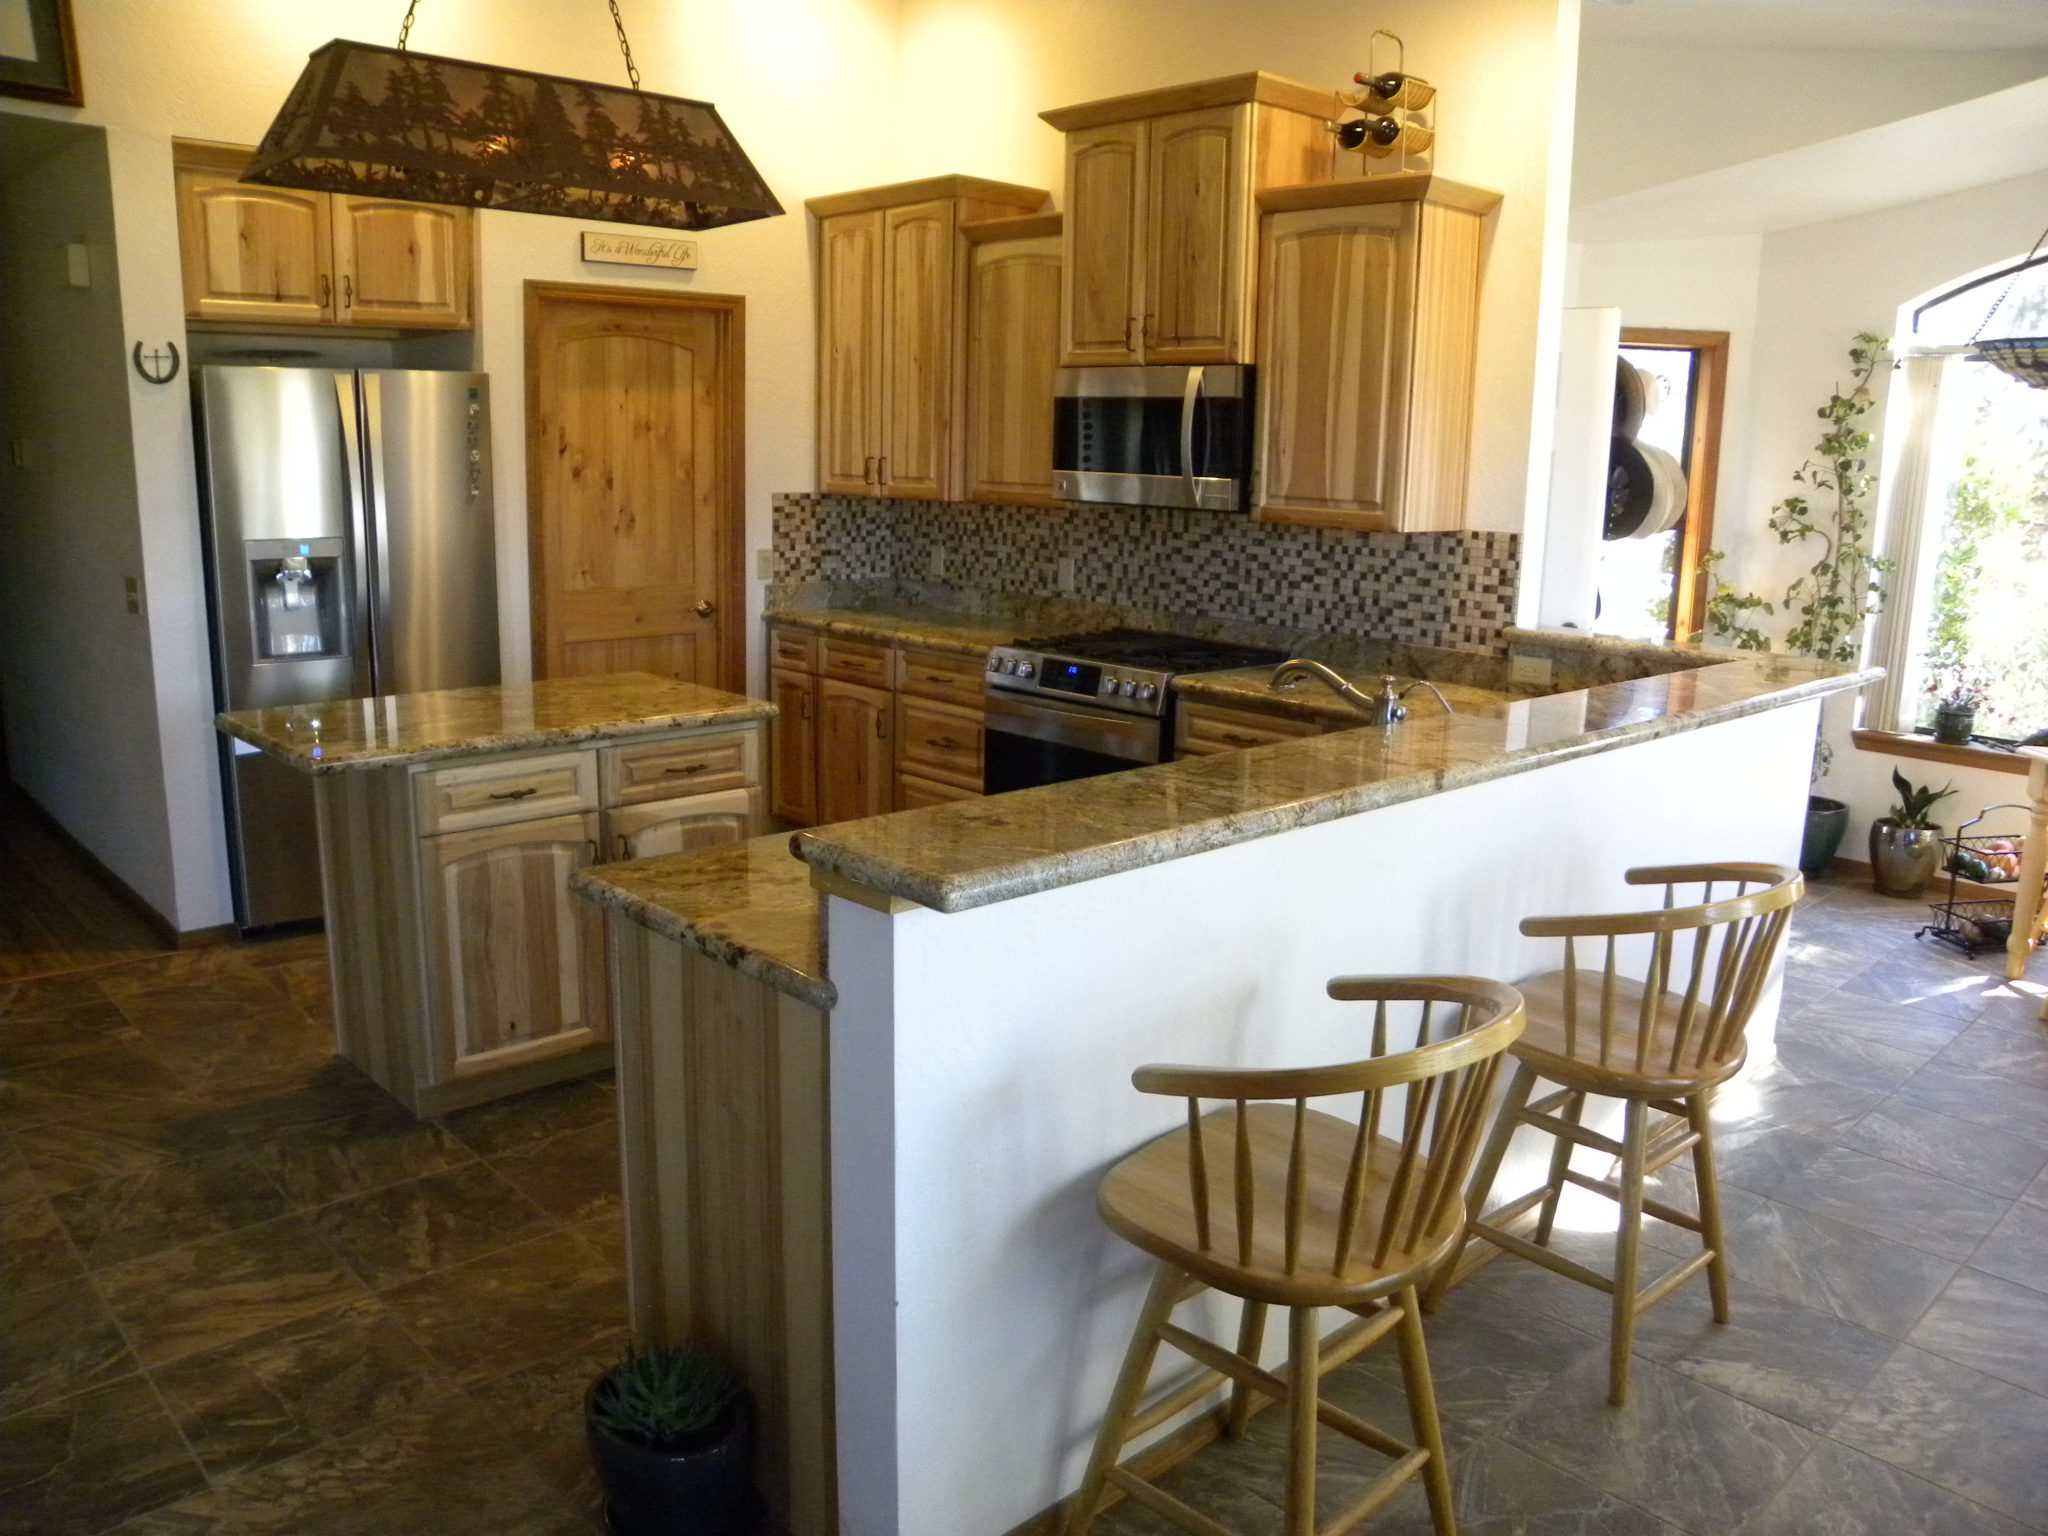 Interior shot of a newly remodeled kitchen with granite countertops and wooden cabinets